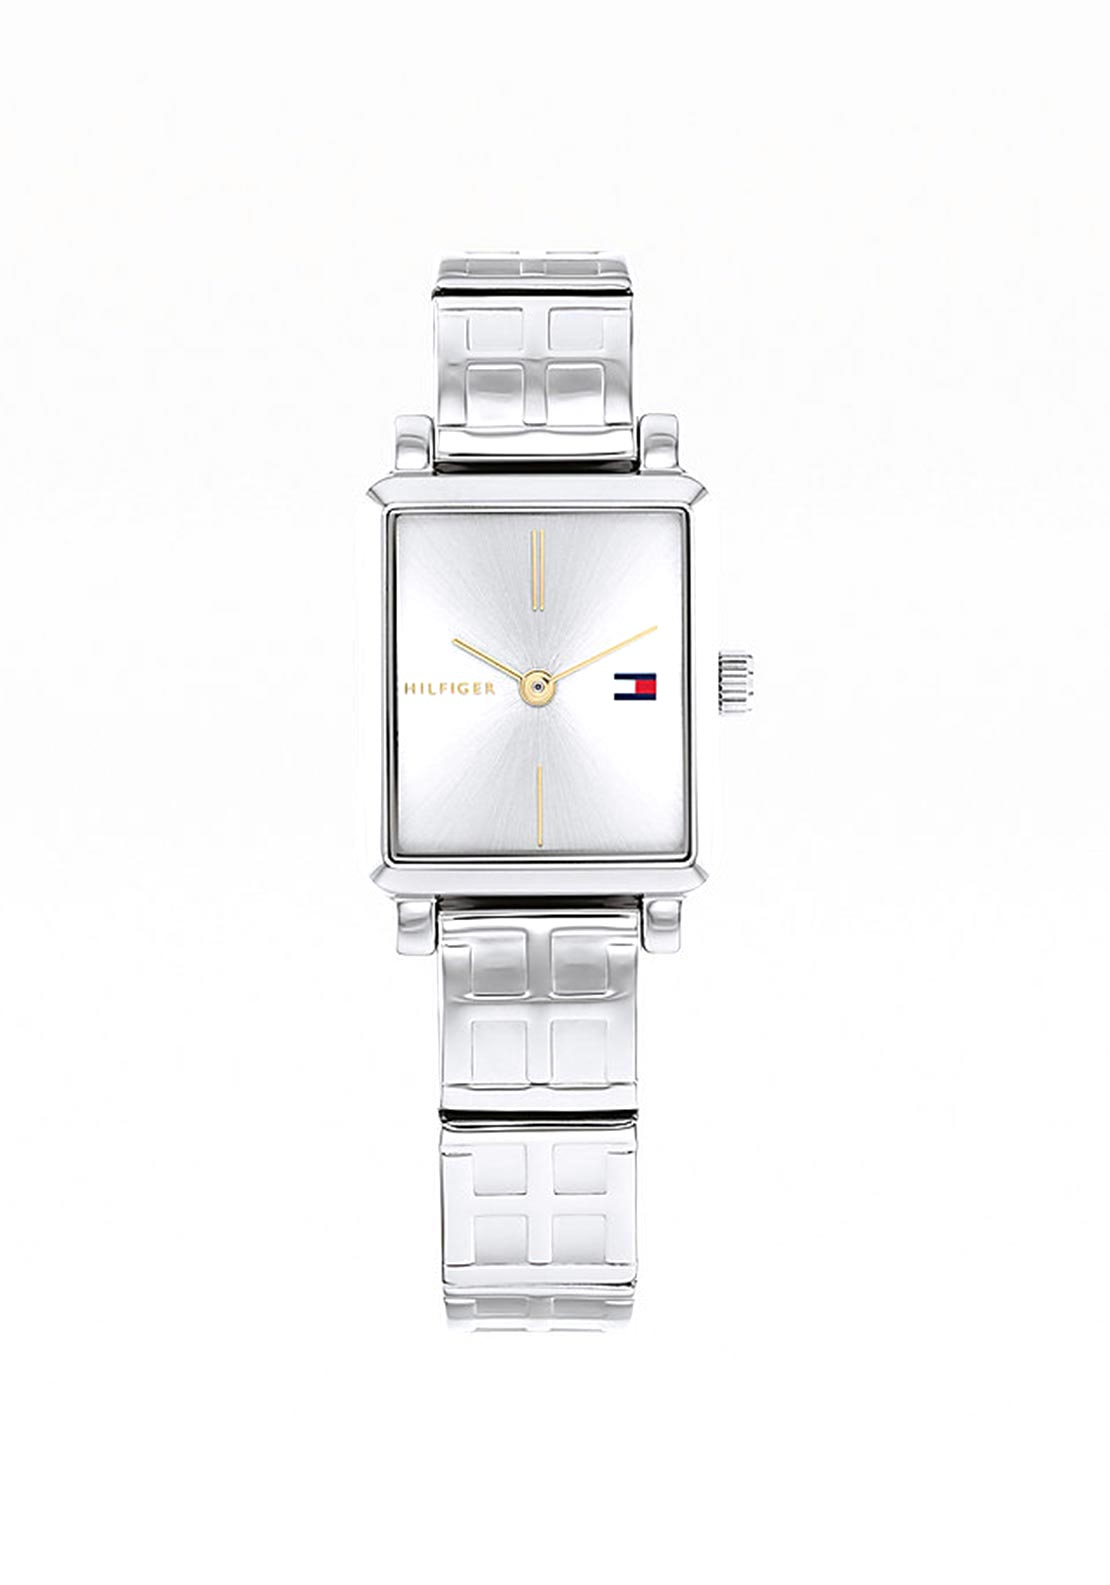 Tommy Hilfiger Womens Monogram Square Face Watch, Silver